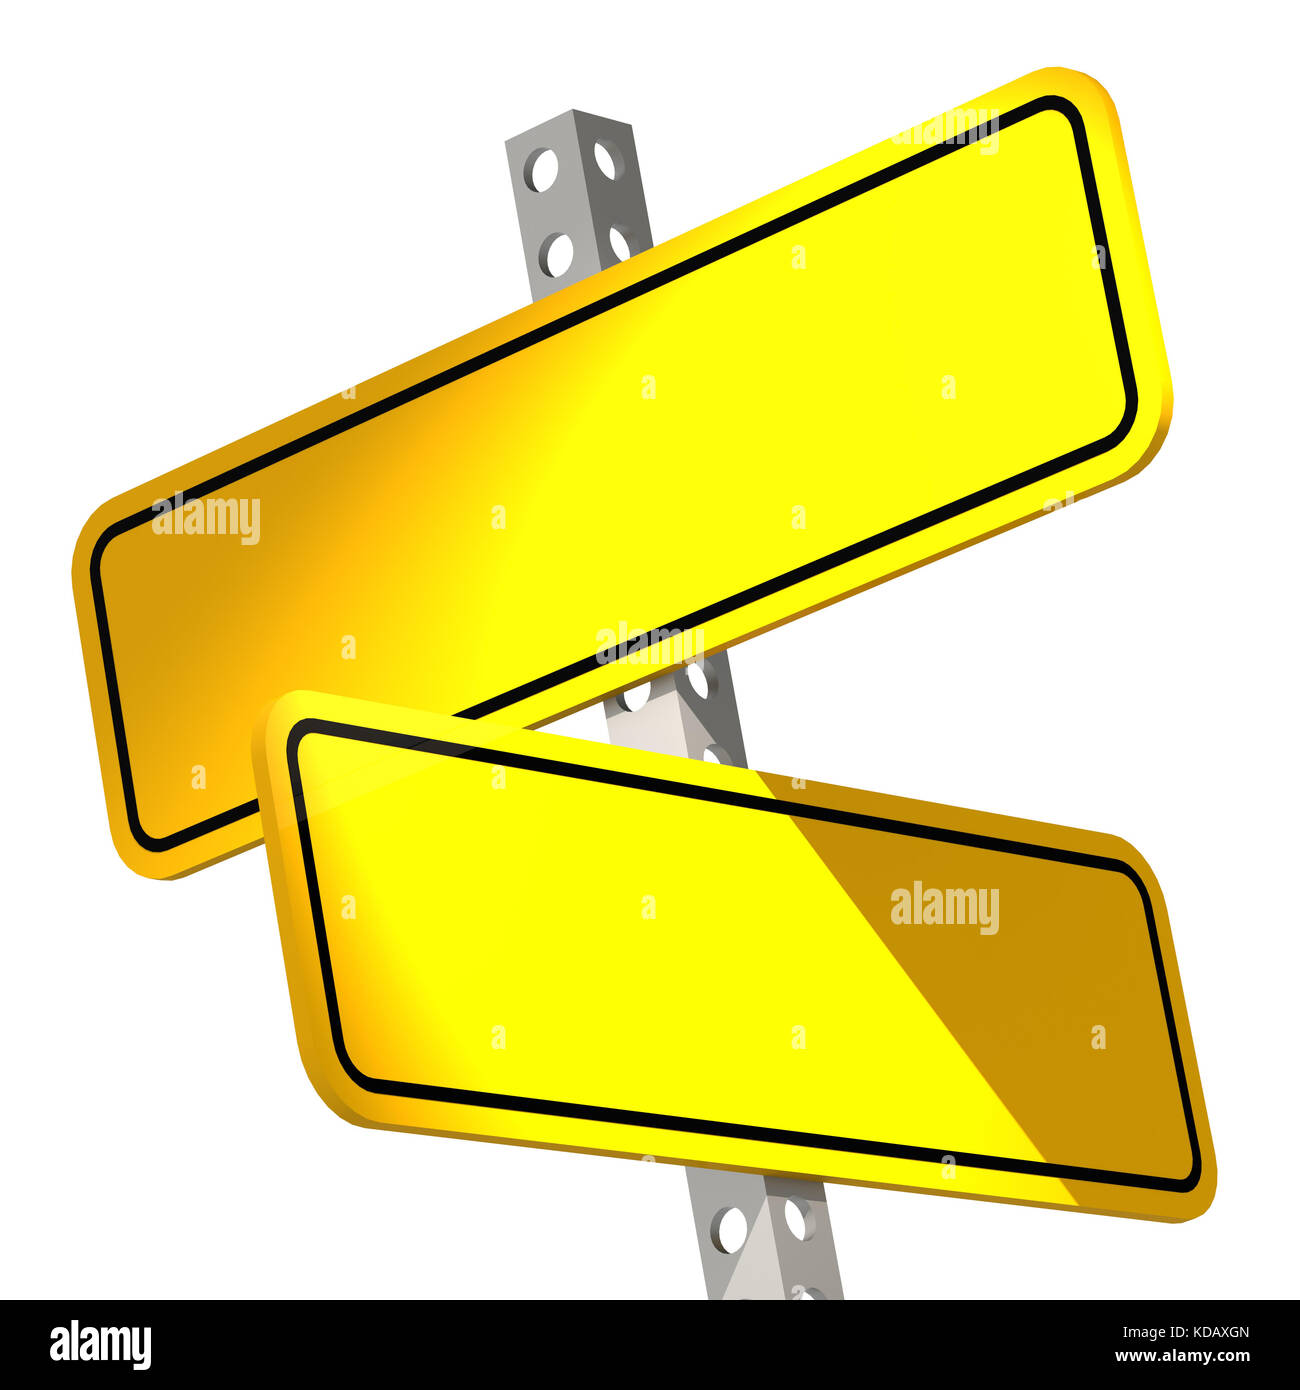 Yellow two road sign isolated image with hi-res rendered artwork that could be used for any graphic design. - Stock Image